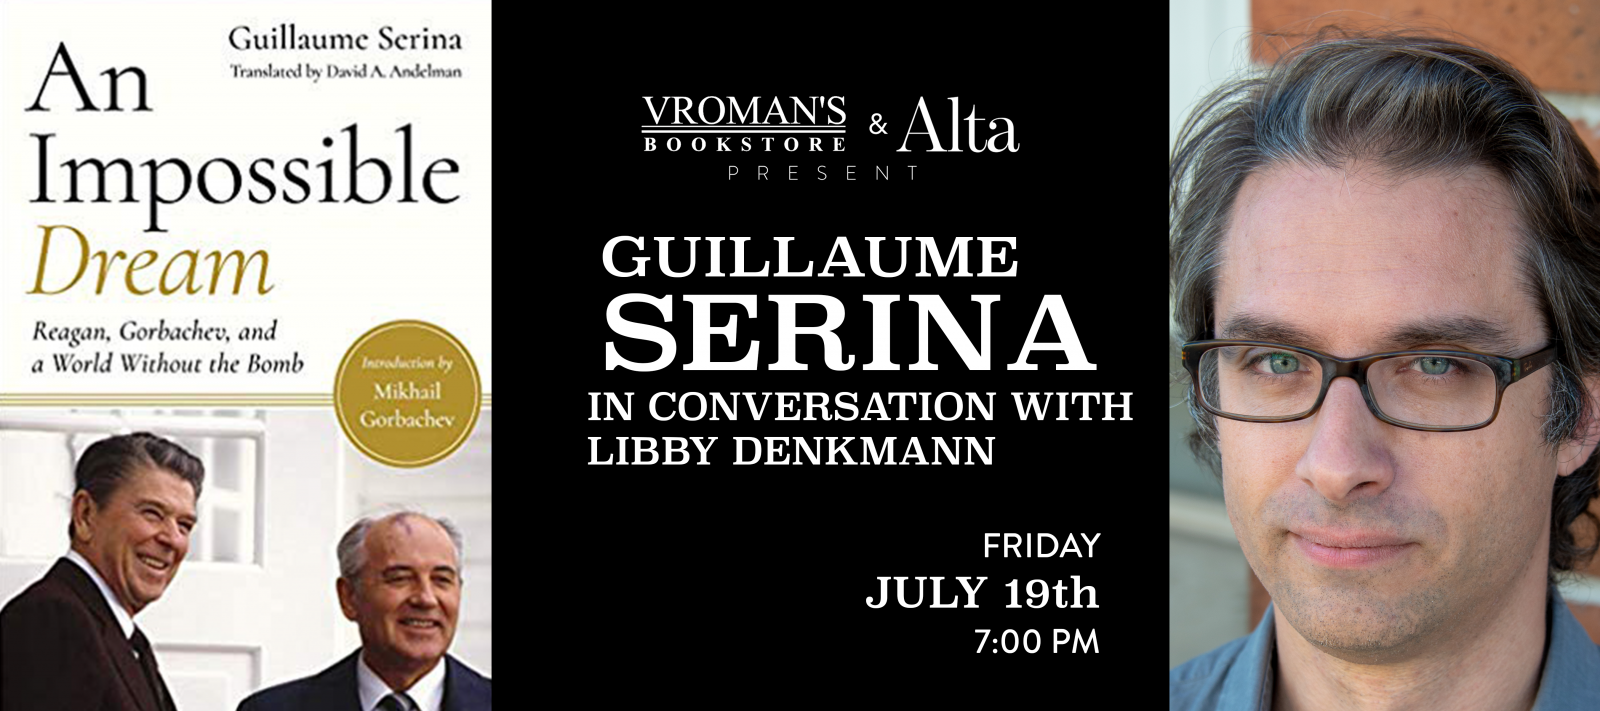 Guillaume Serina book signing Friday July 19th at 7pm